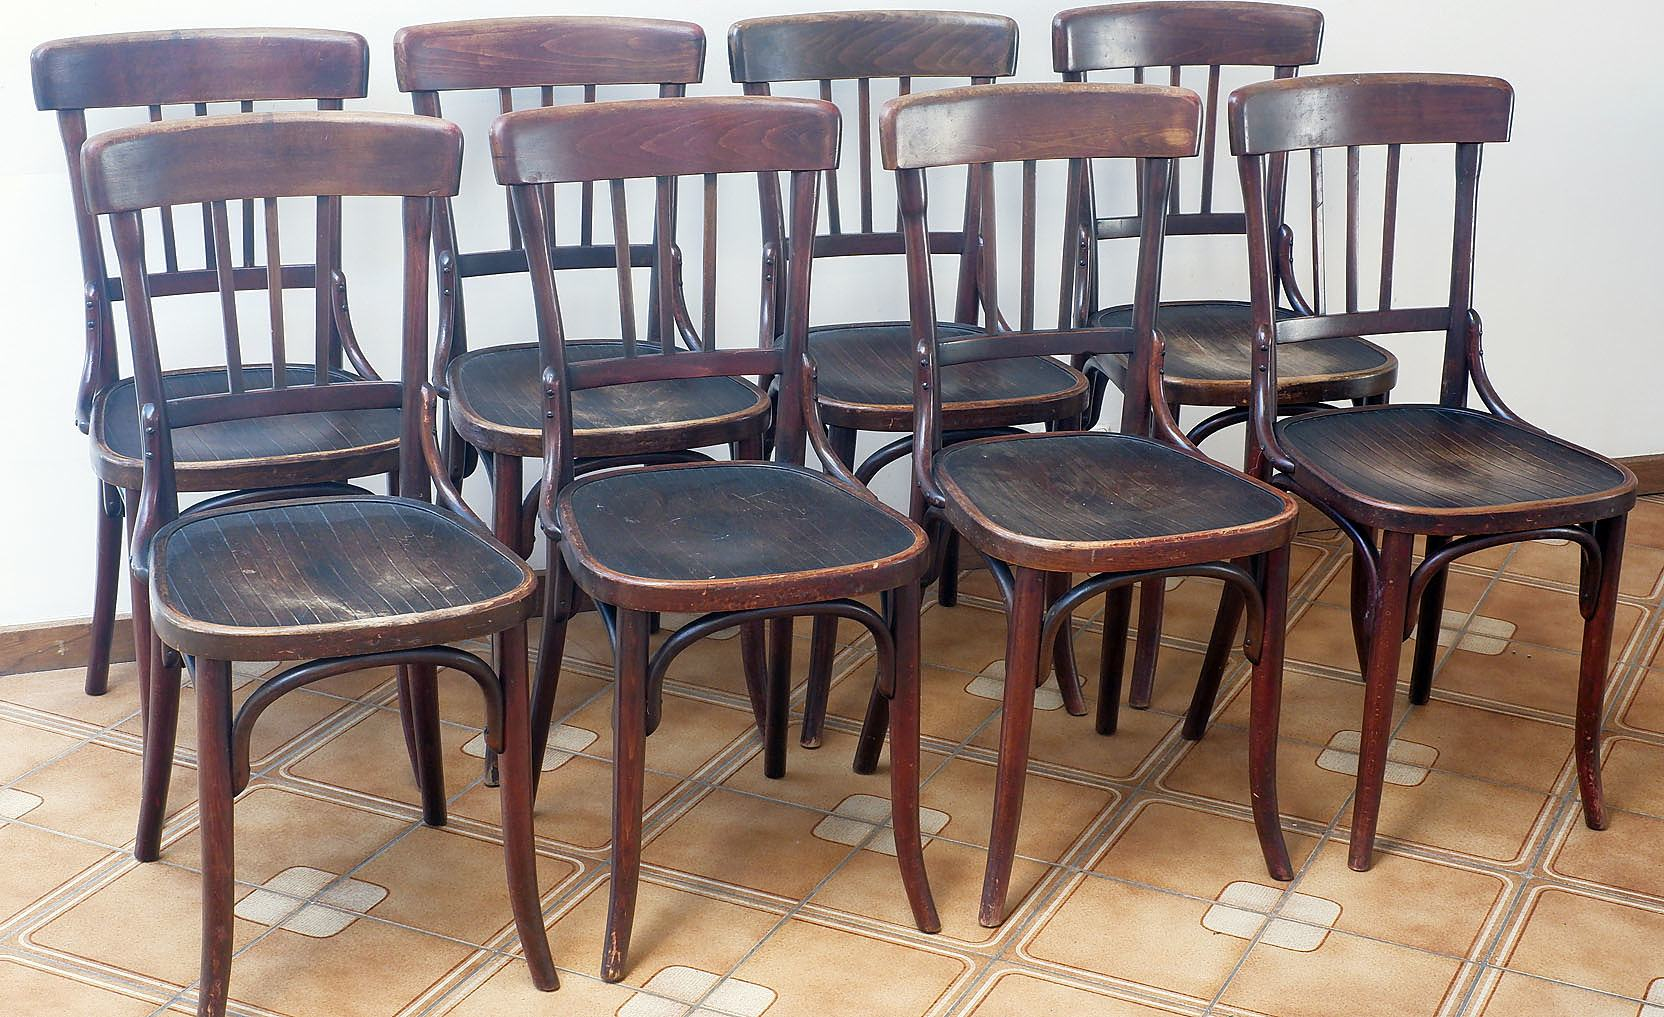 'Set of 8 Antique Jacob and Josef Kohn Bentwood Dining Chairs Circa Early 20th Century'